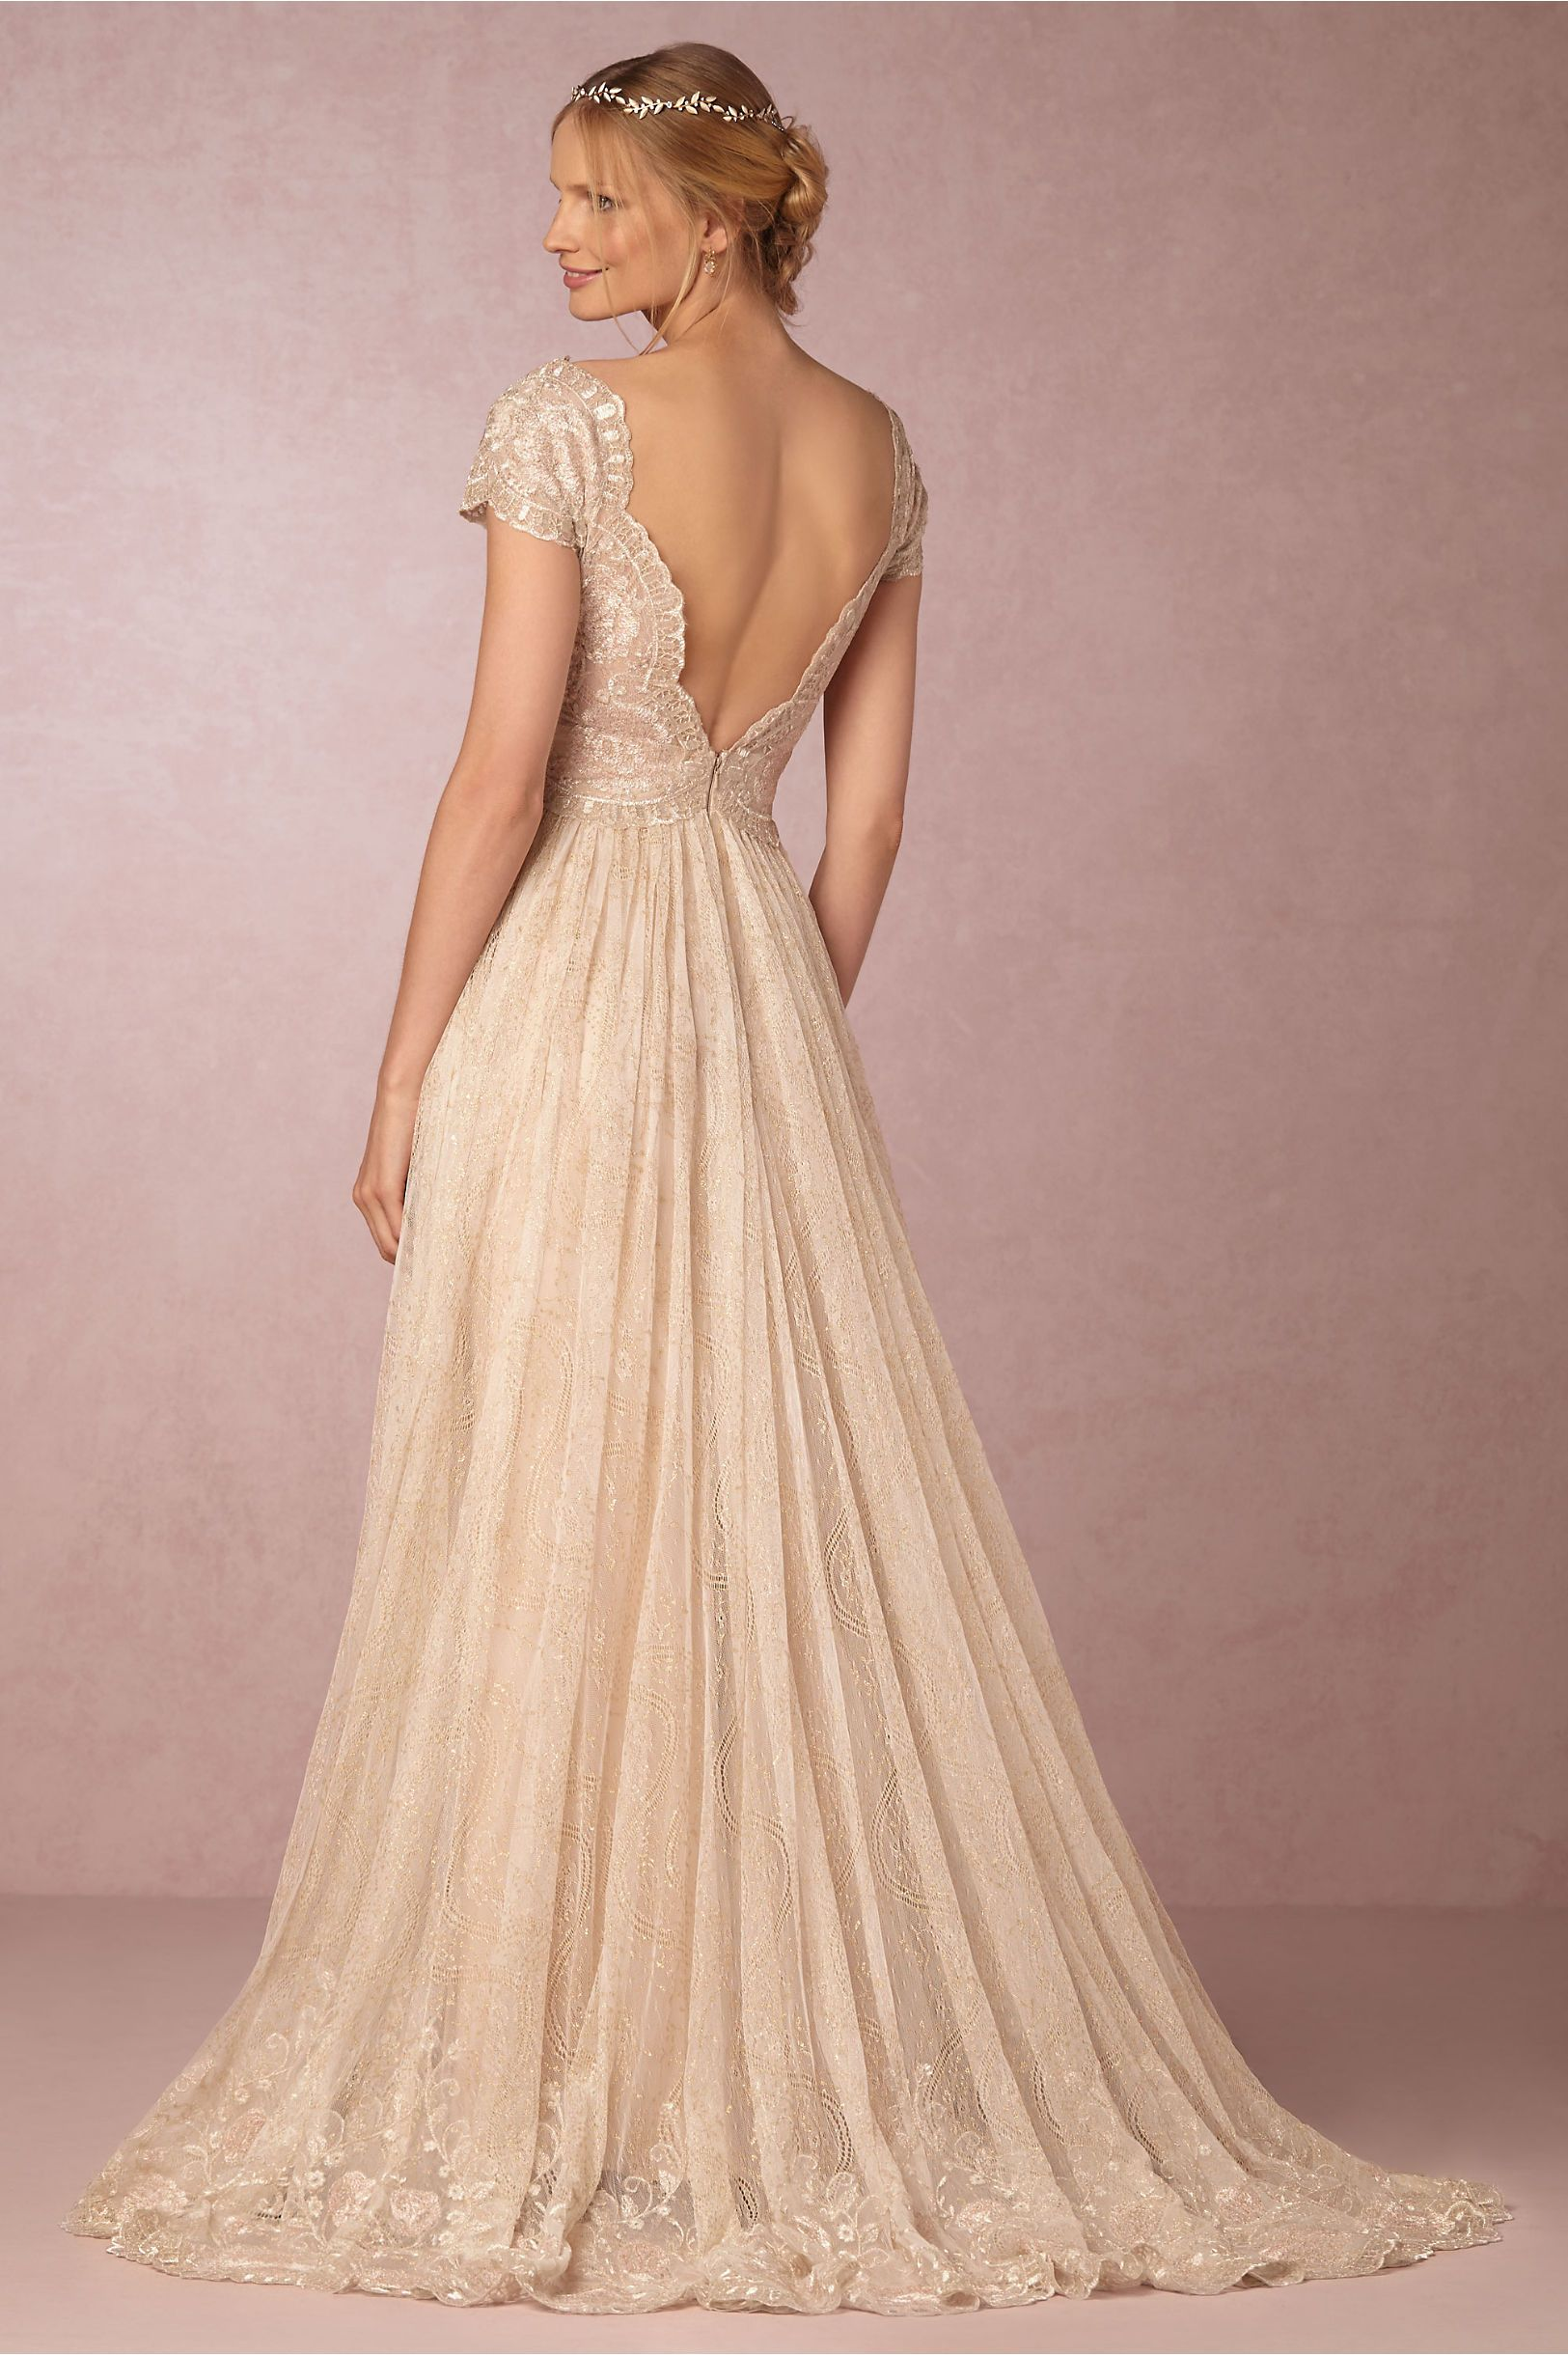 Ivory cotton lace with metallic detail poly lining kensington gown